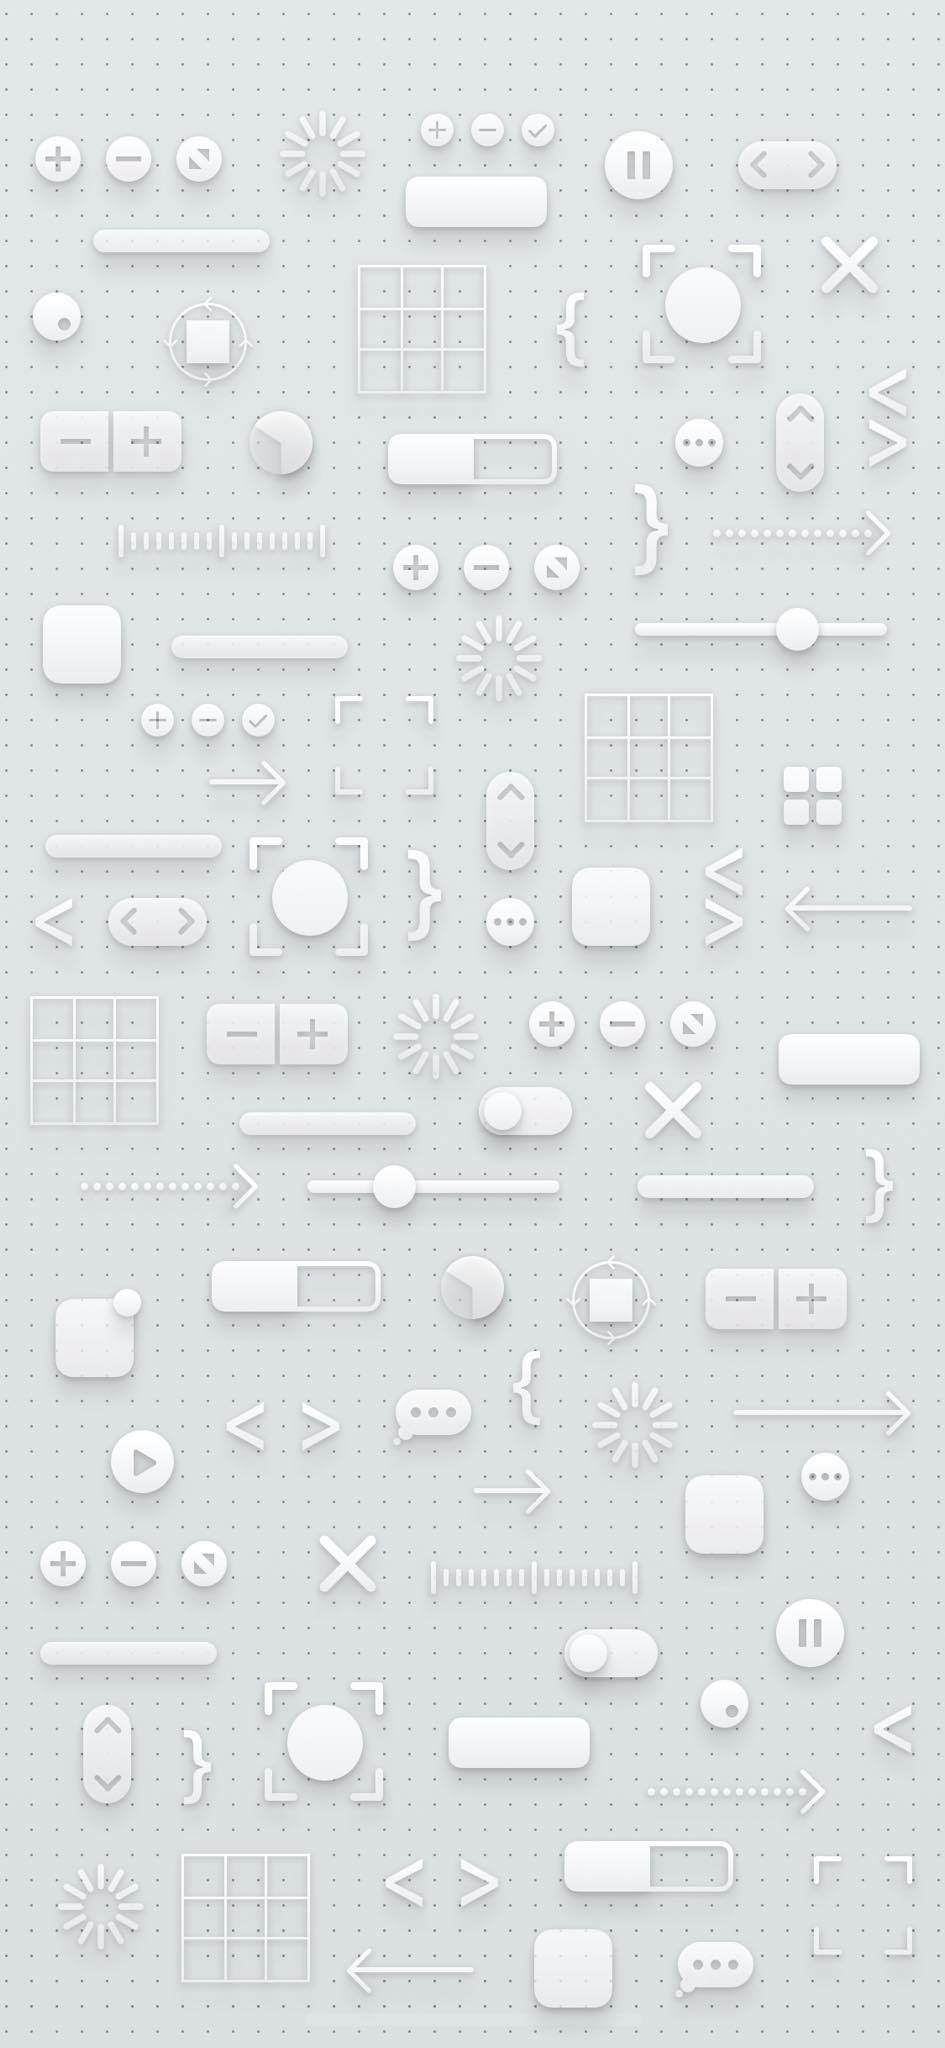 Iphone X Wallpaper 4k Live Download Wwdc 2018 Wallpapers For Iphone